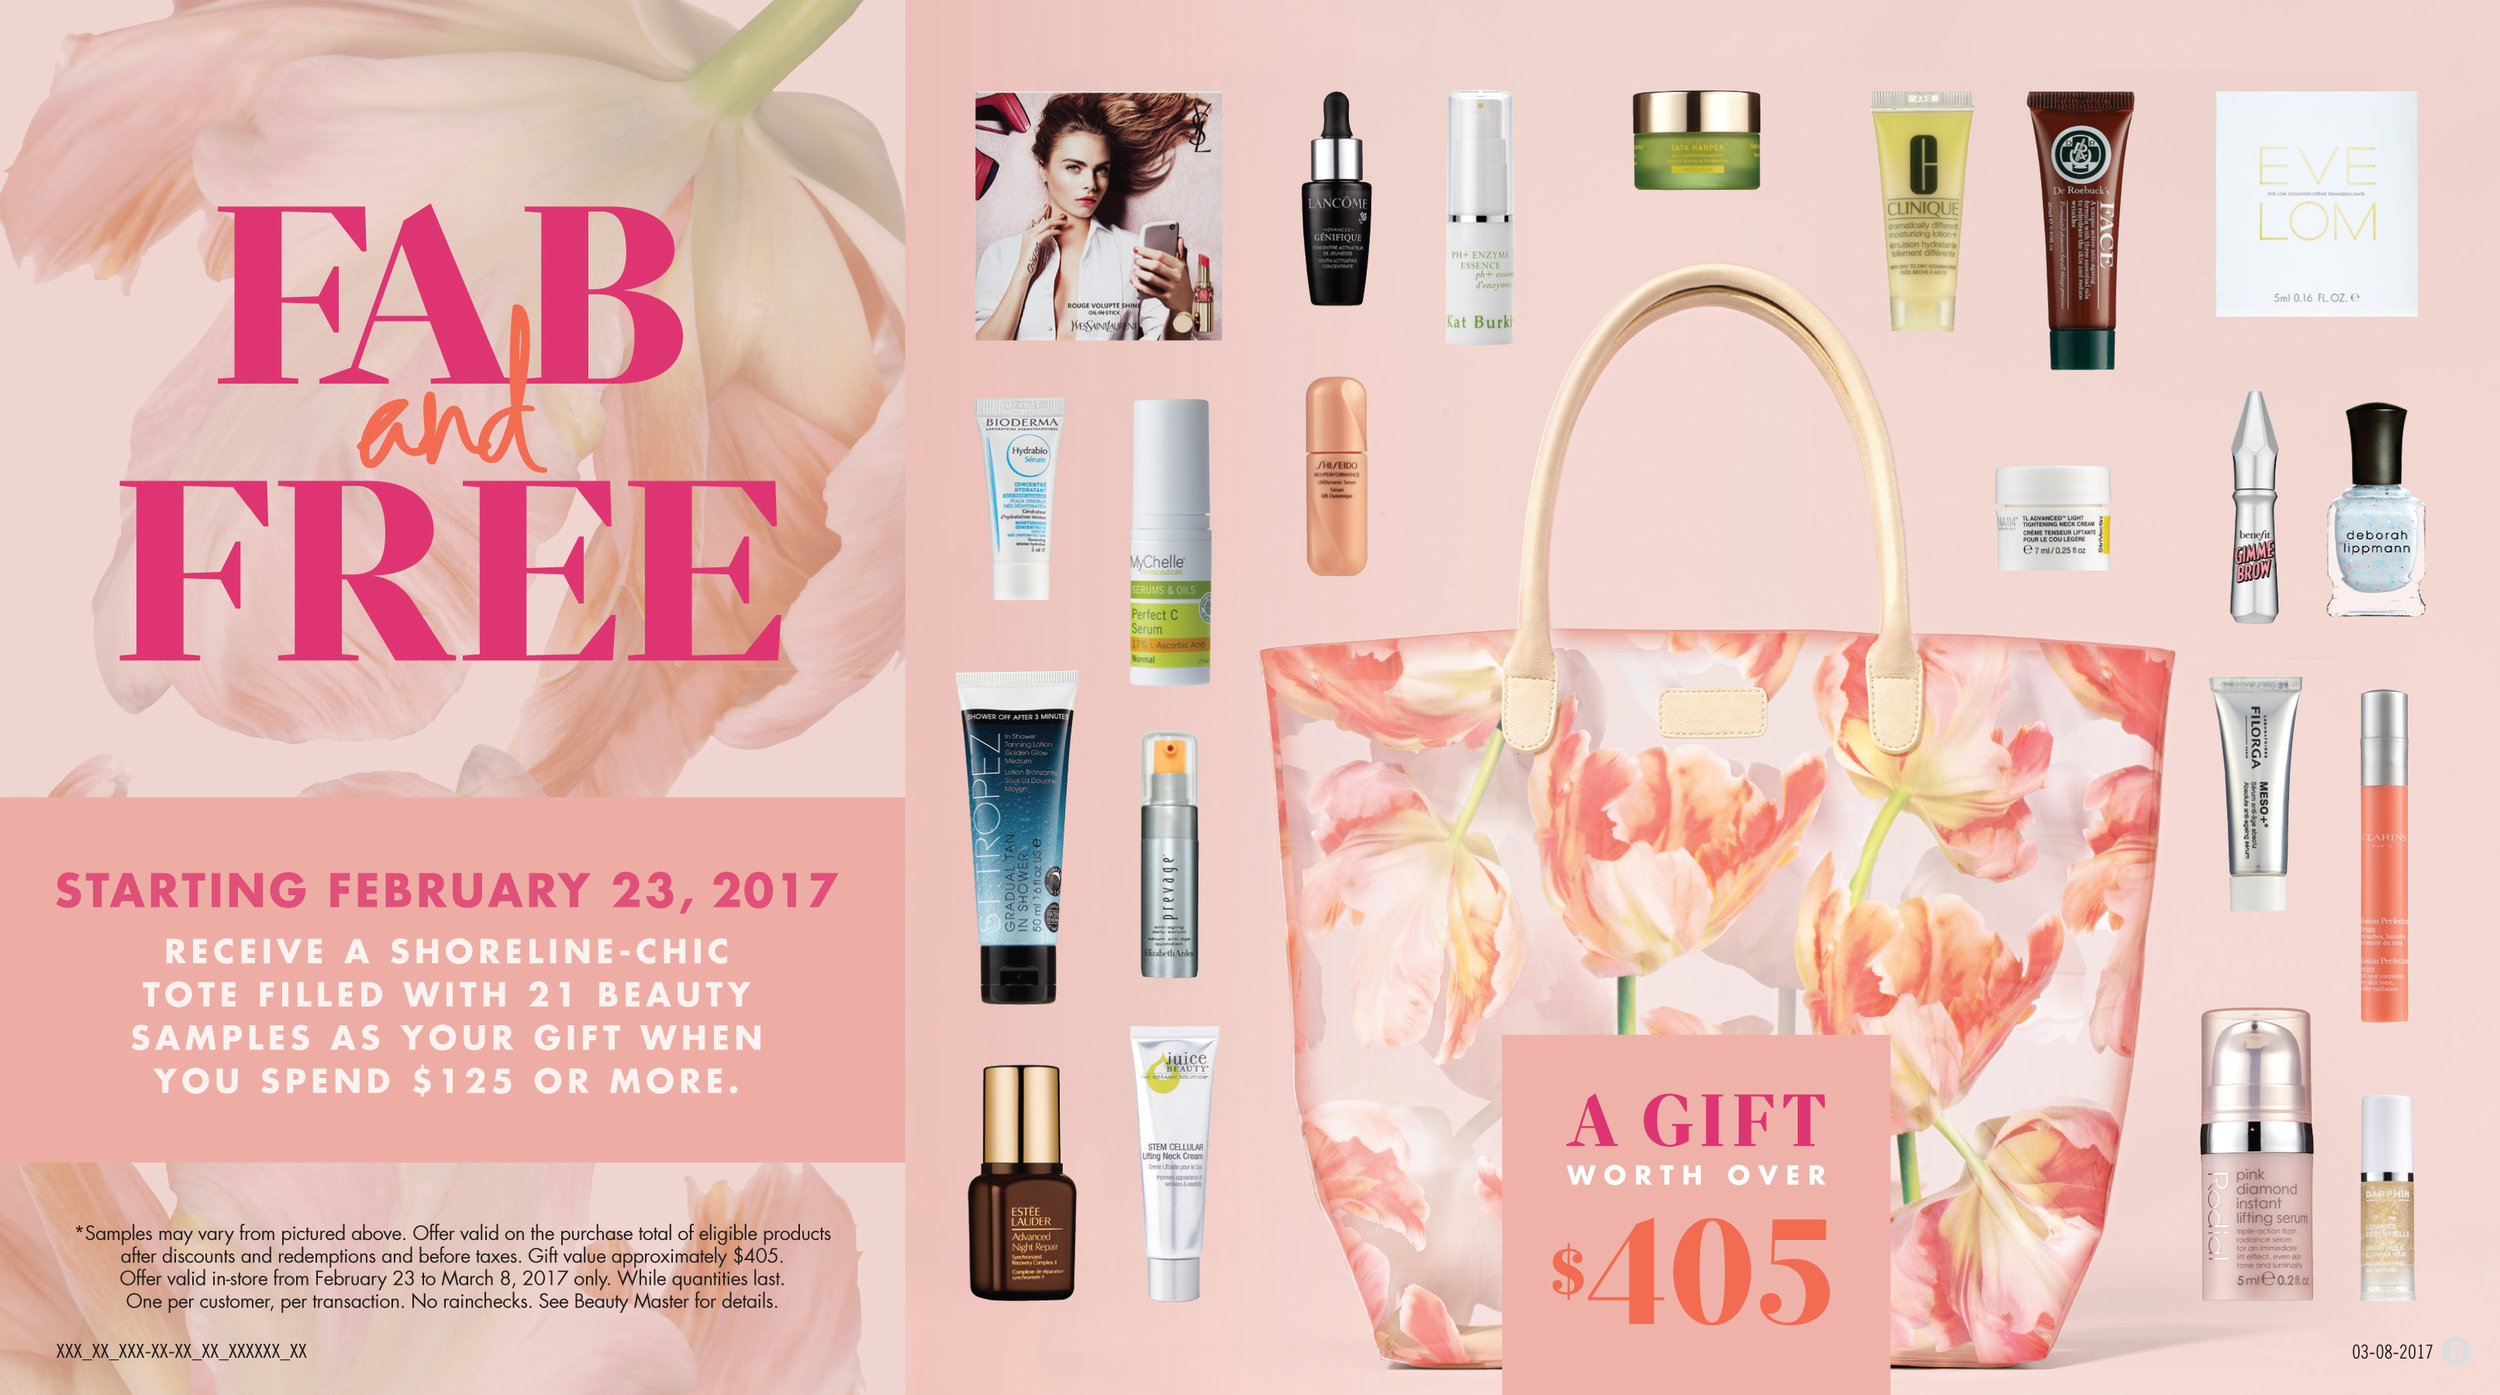 Murale Spring 2017  Fab and Free Gift with Purchase Promotion Cash Sign 10.75 x 6